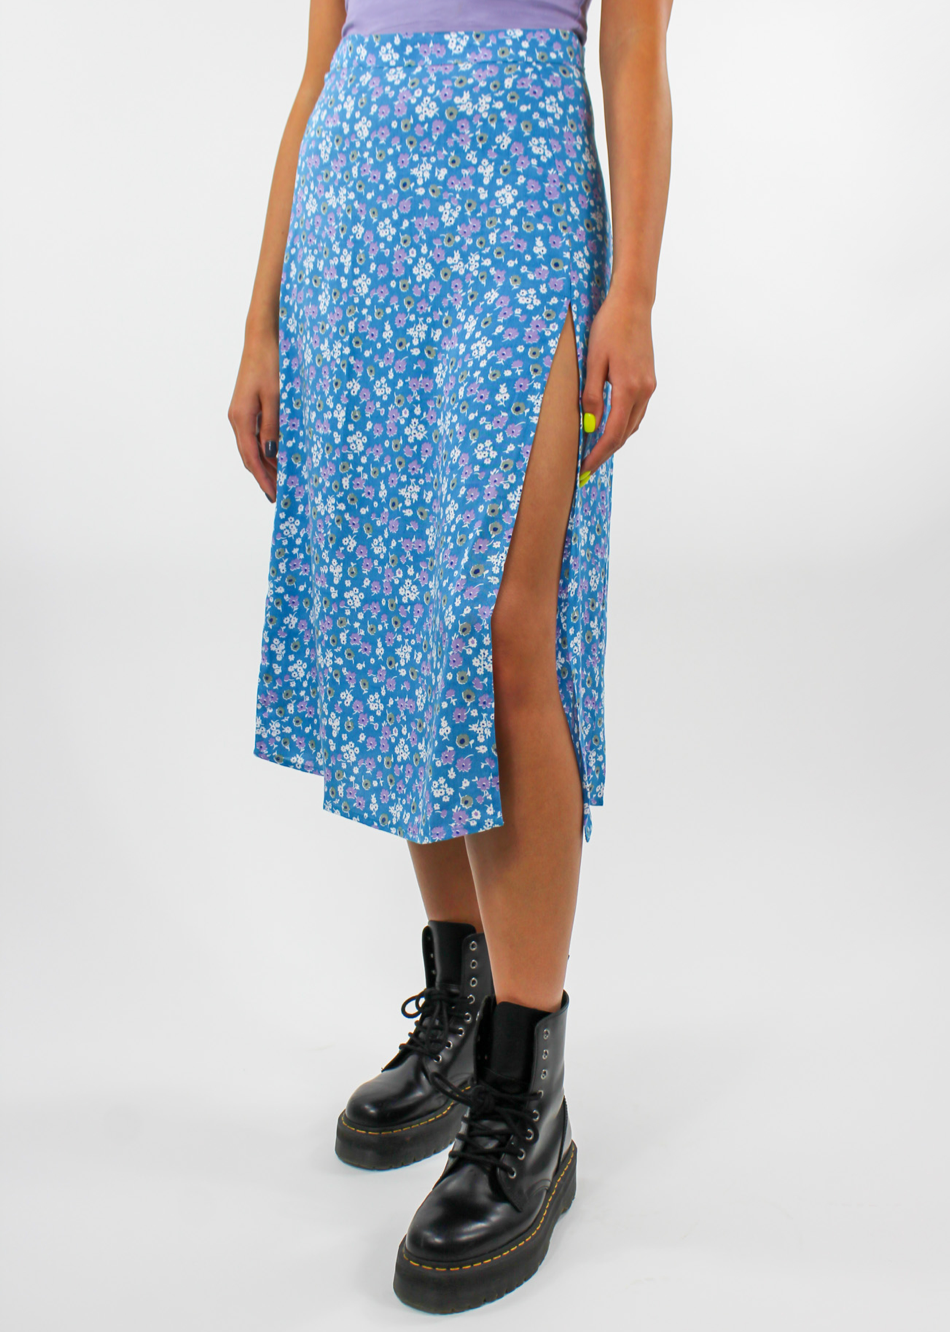 Flower Power Skirt ★ Baby Blue